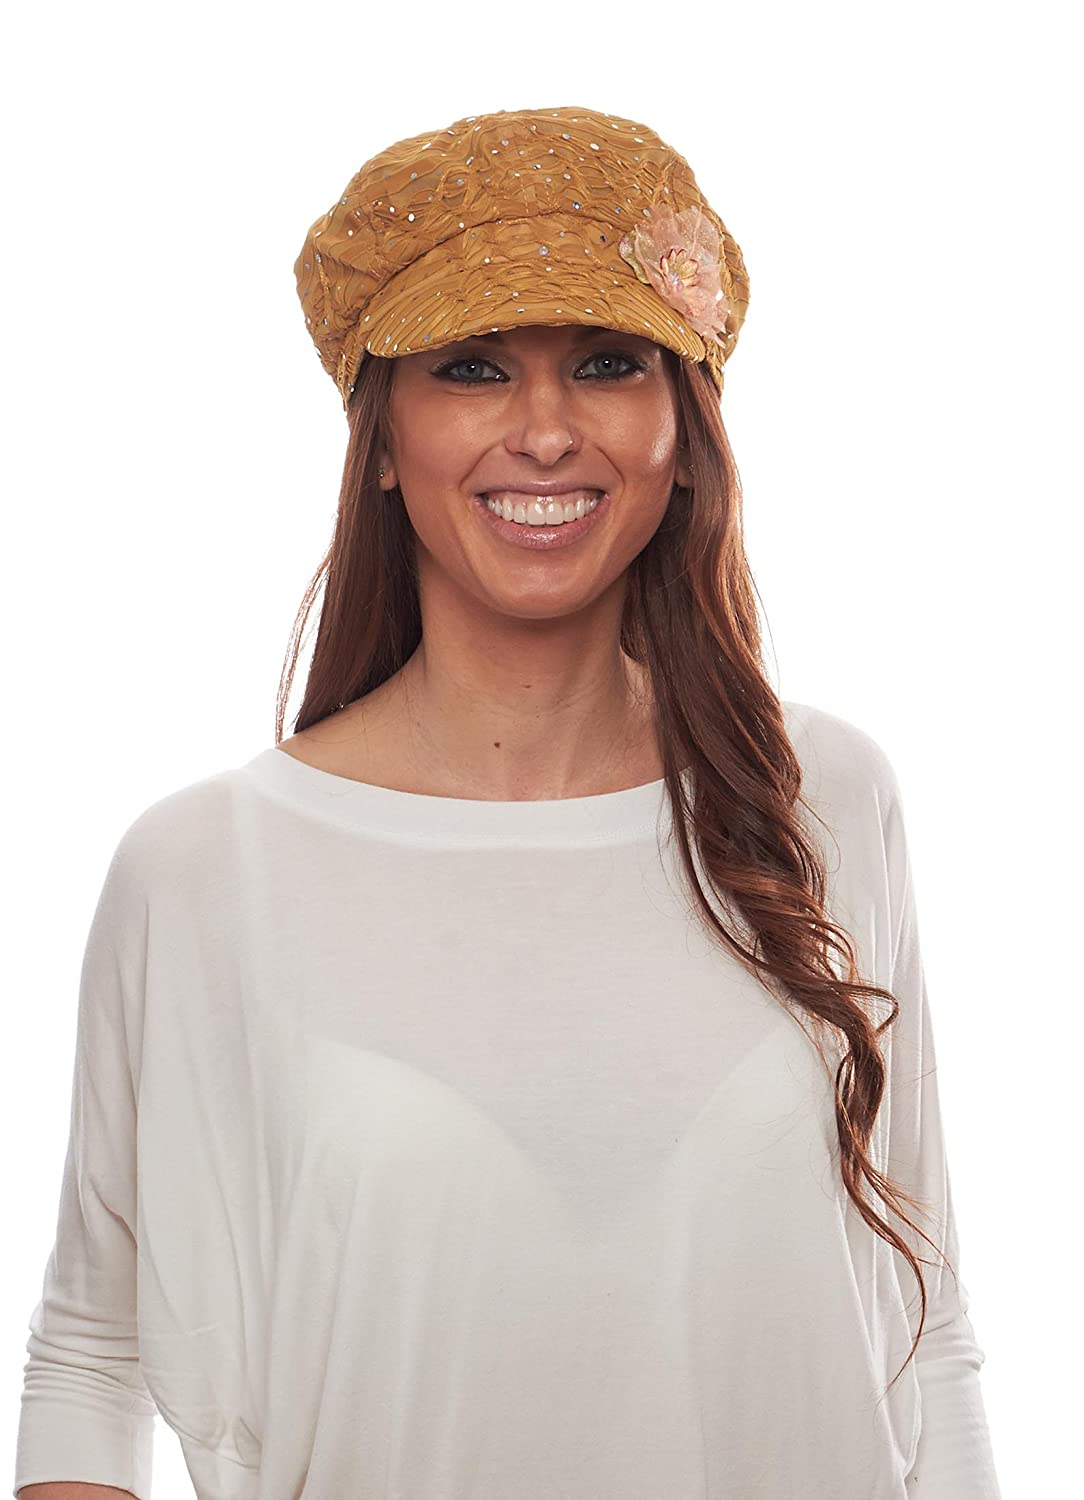 Glitter Sequin Newsboy Cap with Sparkle Flower, Gold with Flowers Greatlookz Fashion 5HRT71485A-C65M